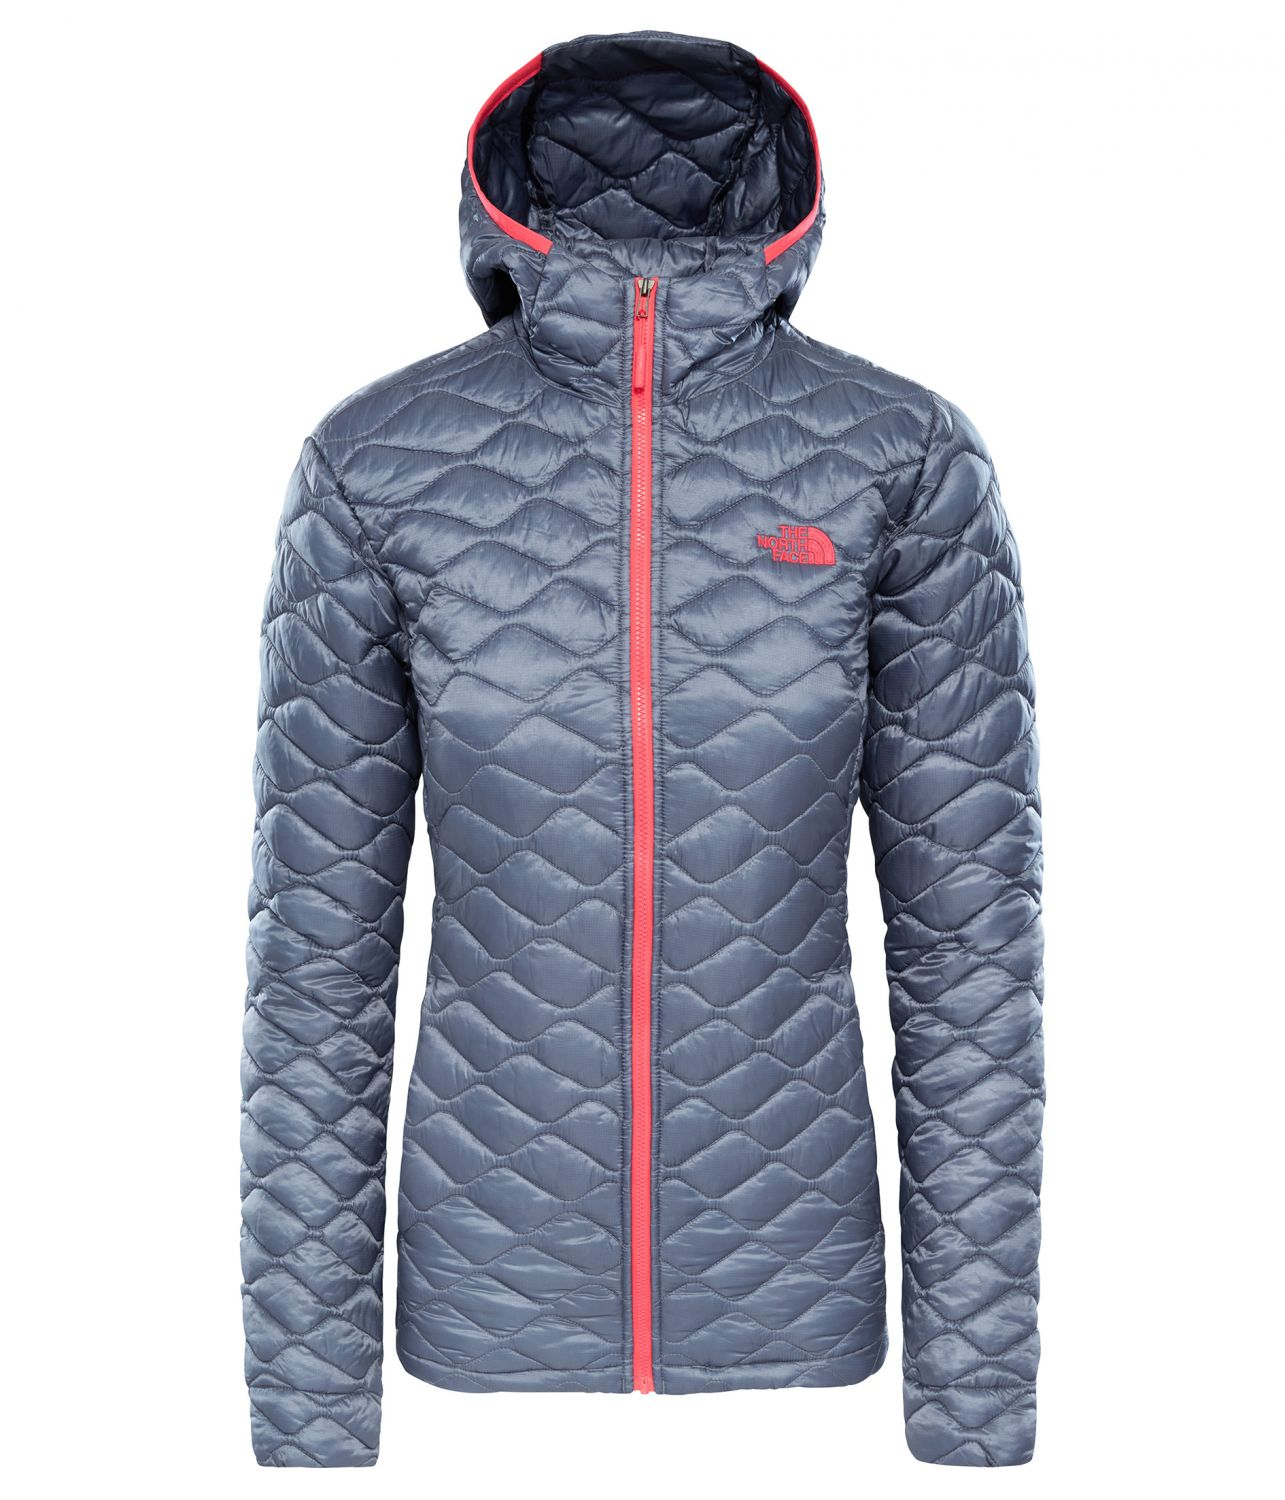 The North Face Damen Thermoball™ Hoodie im Biwak Onlineshop